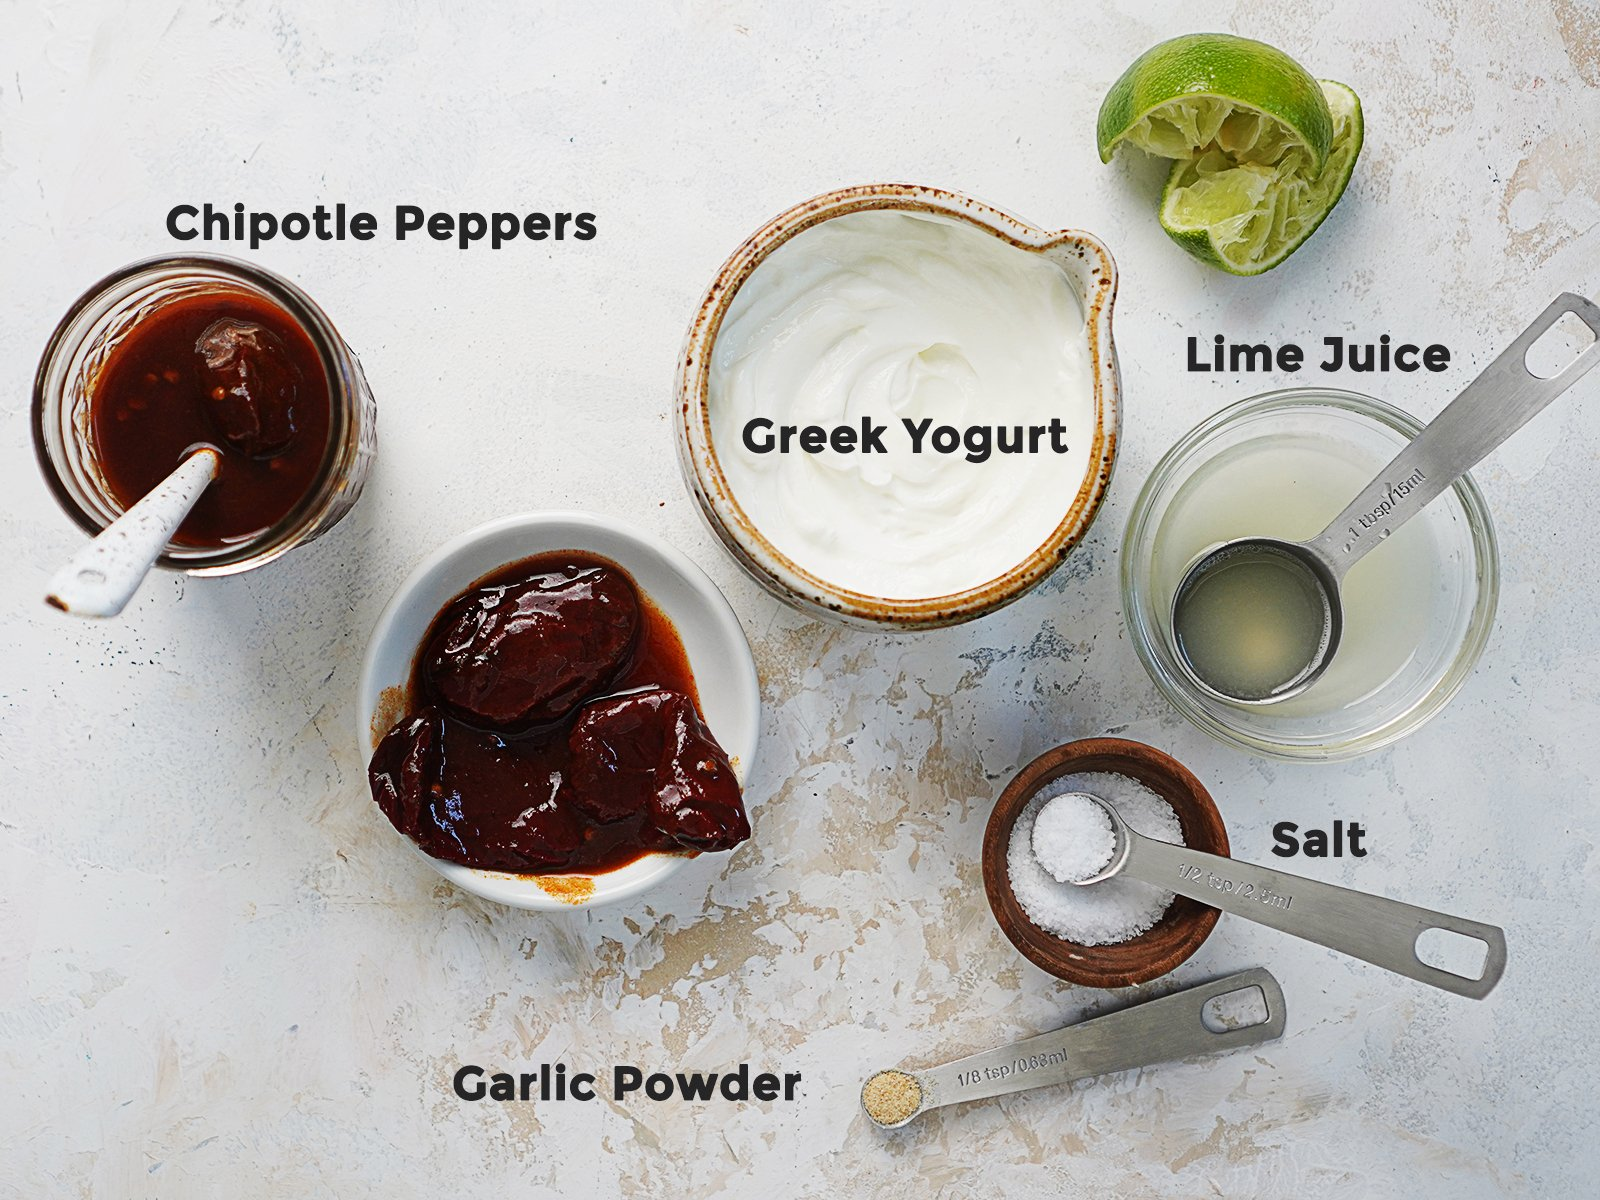 Ingredients in small bowls: chipotle peppers, Greek yogurt, lime juice, garlic powder and salt.